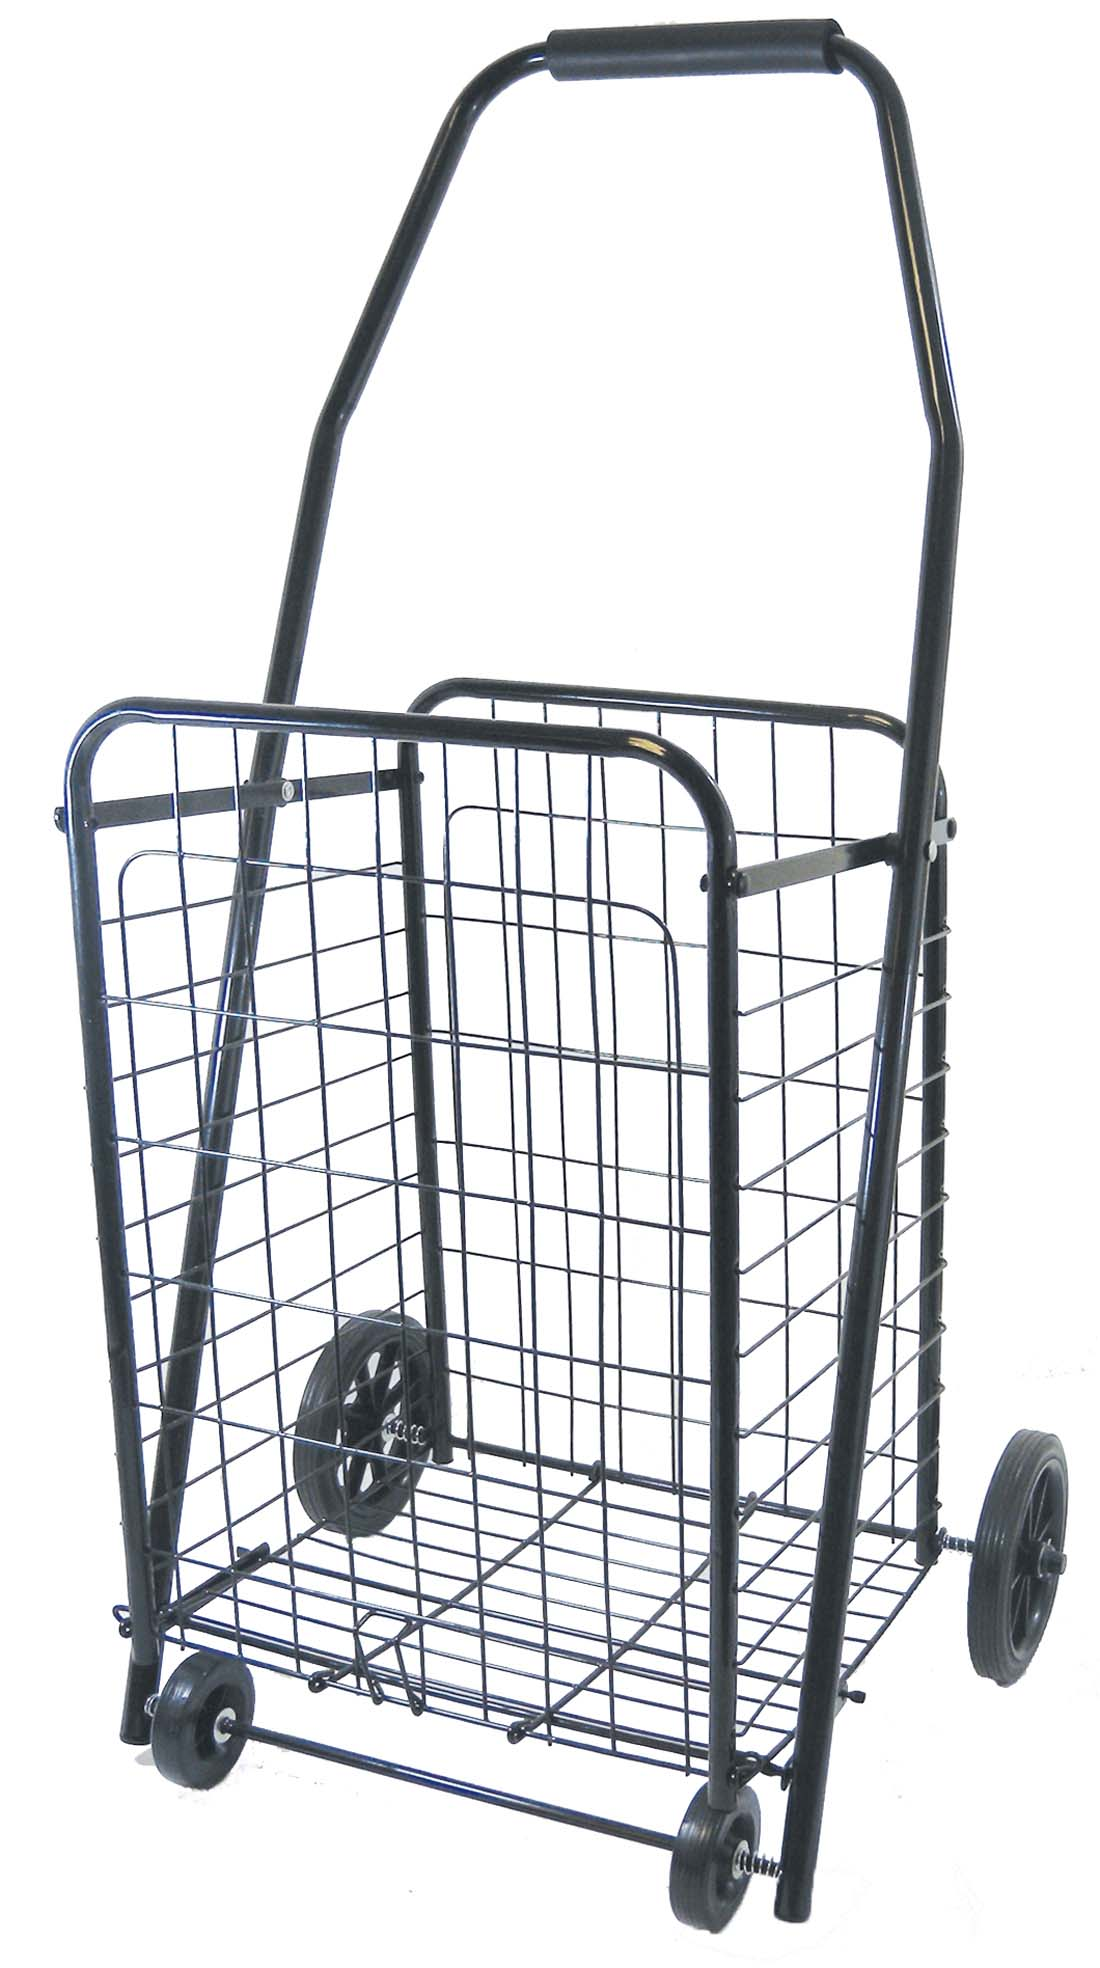 View METAL SHOPPING CART 34 X 18 X 14 INCH WITH 4 WHEELS